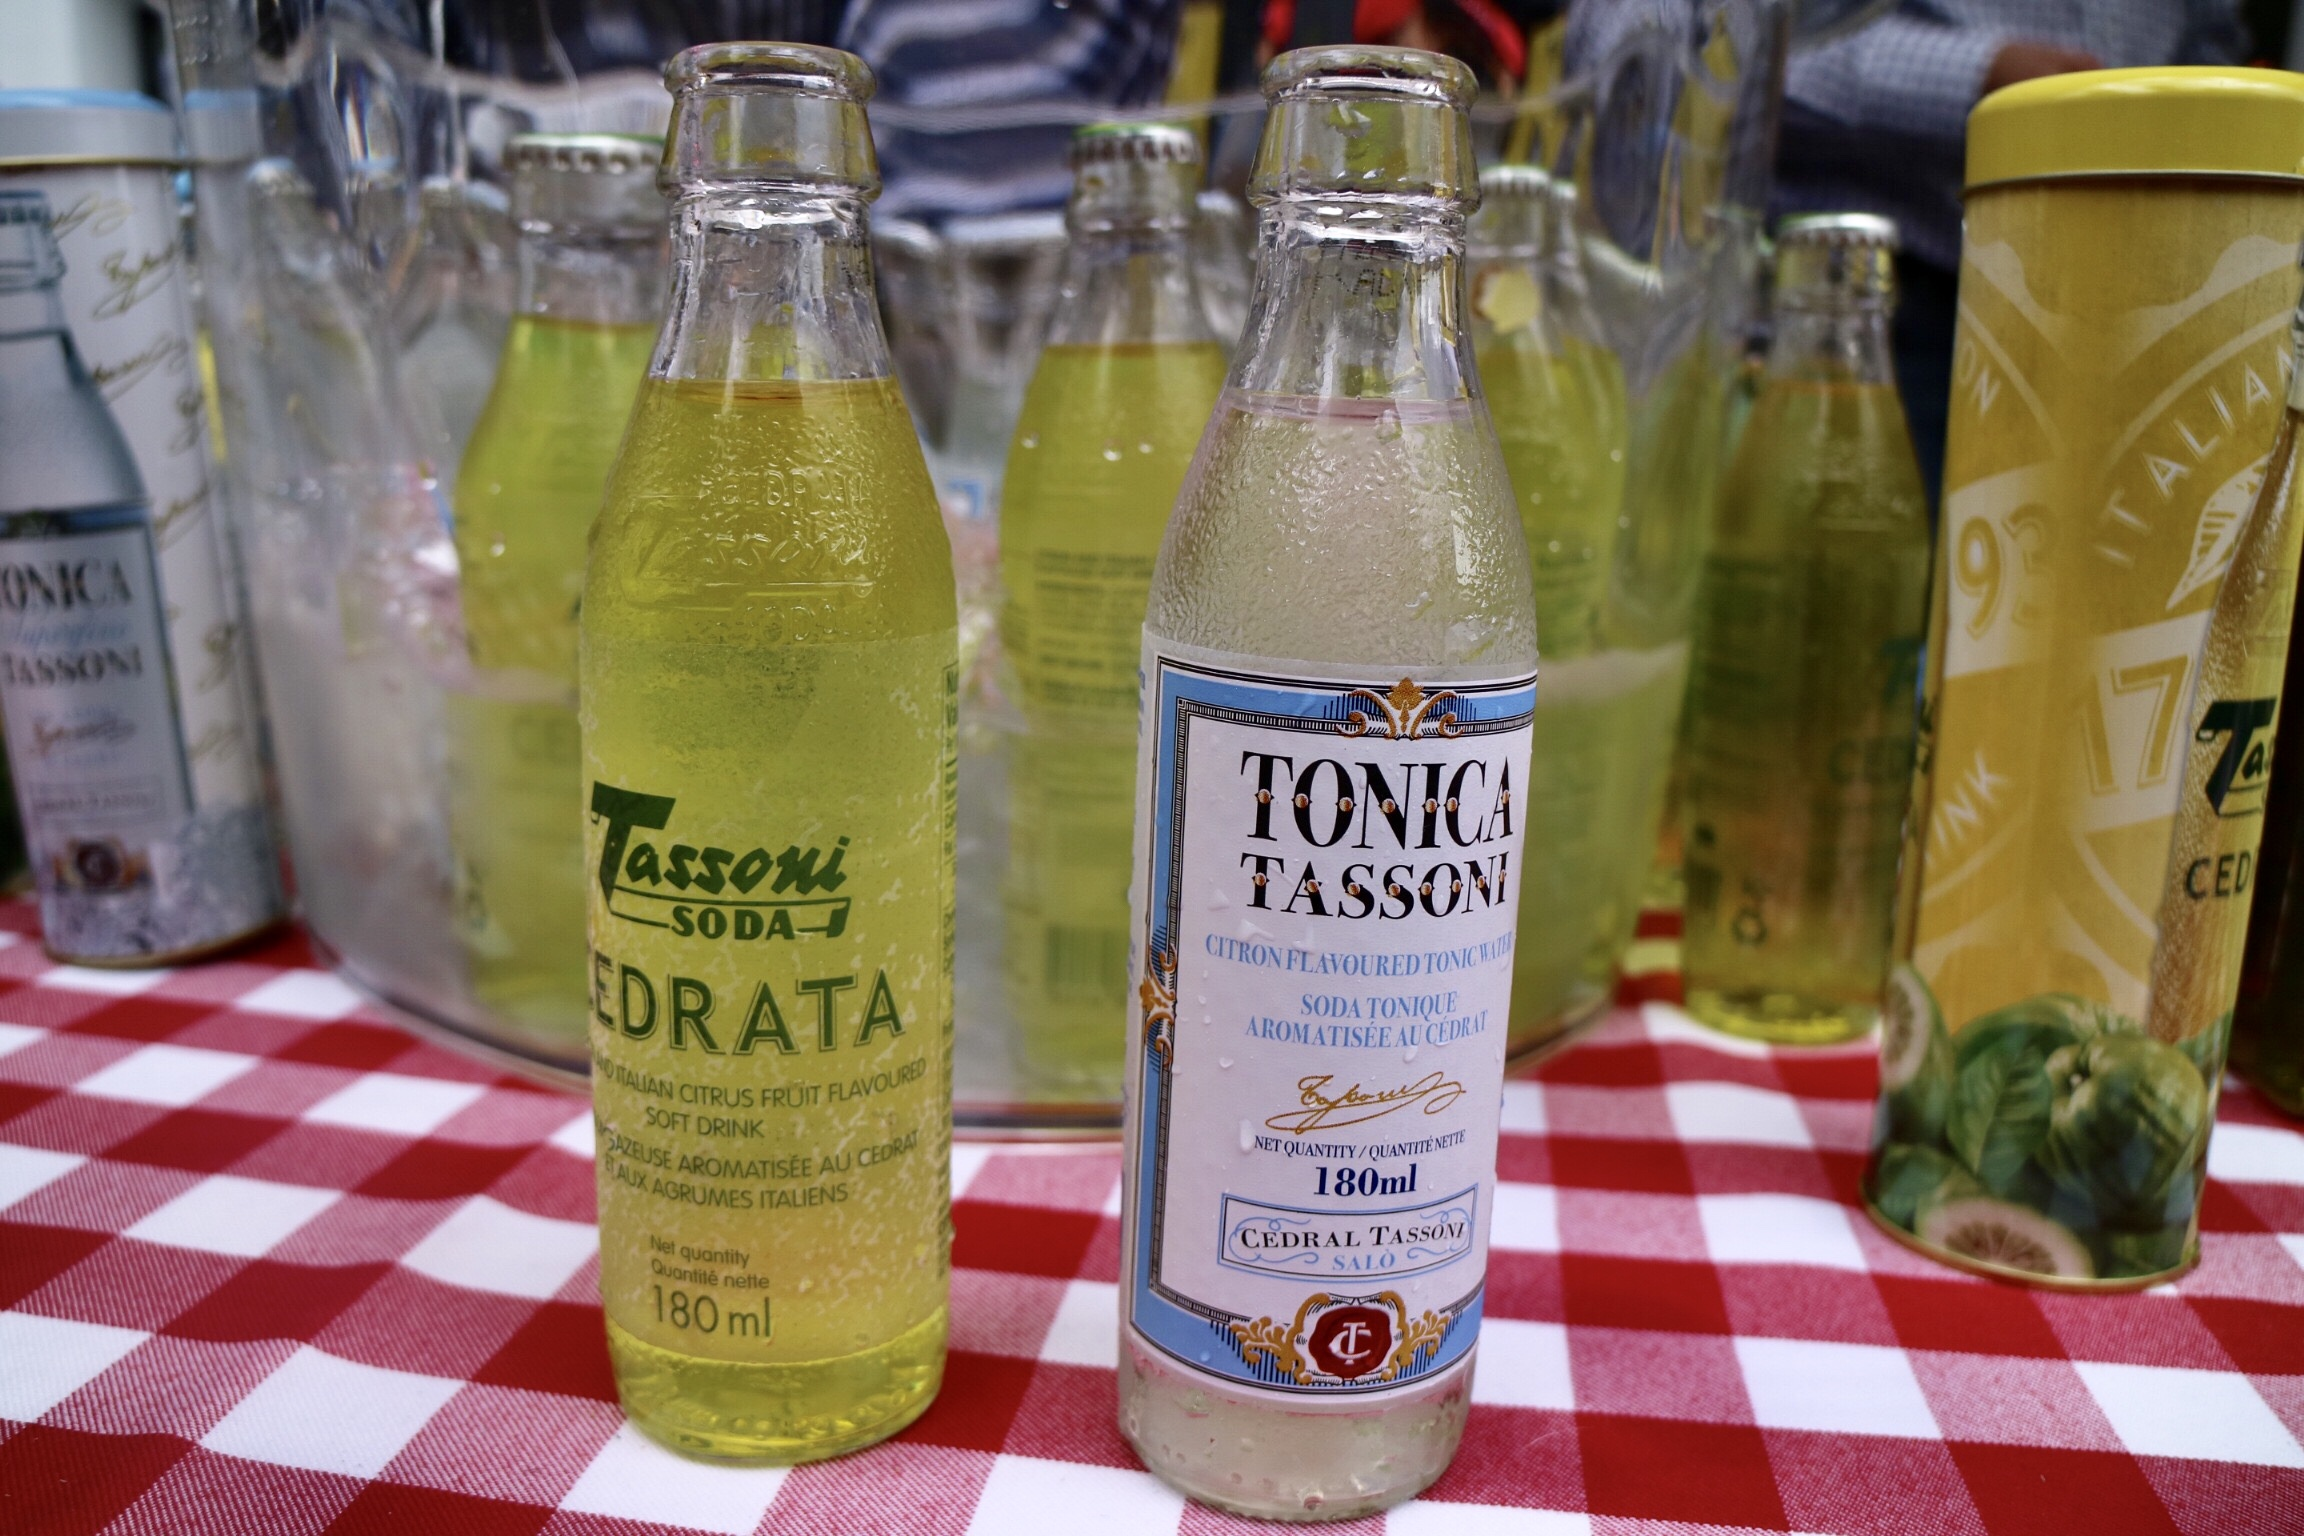 Citrus Soda and Tonic Water from CEDRATA TASSONI,